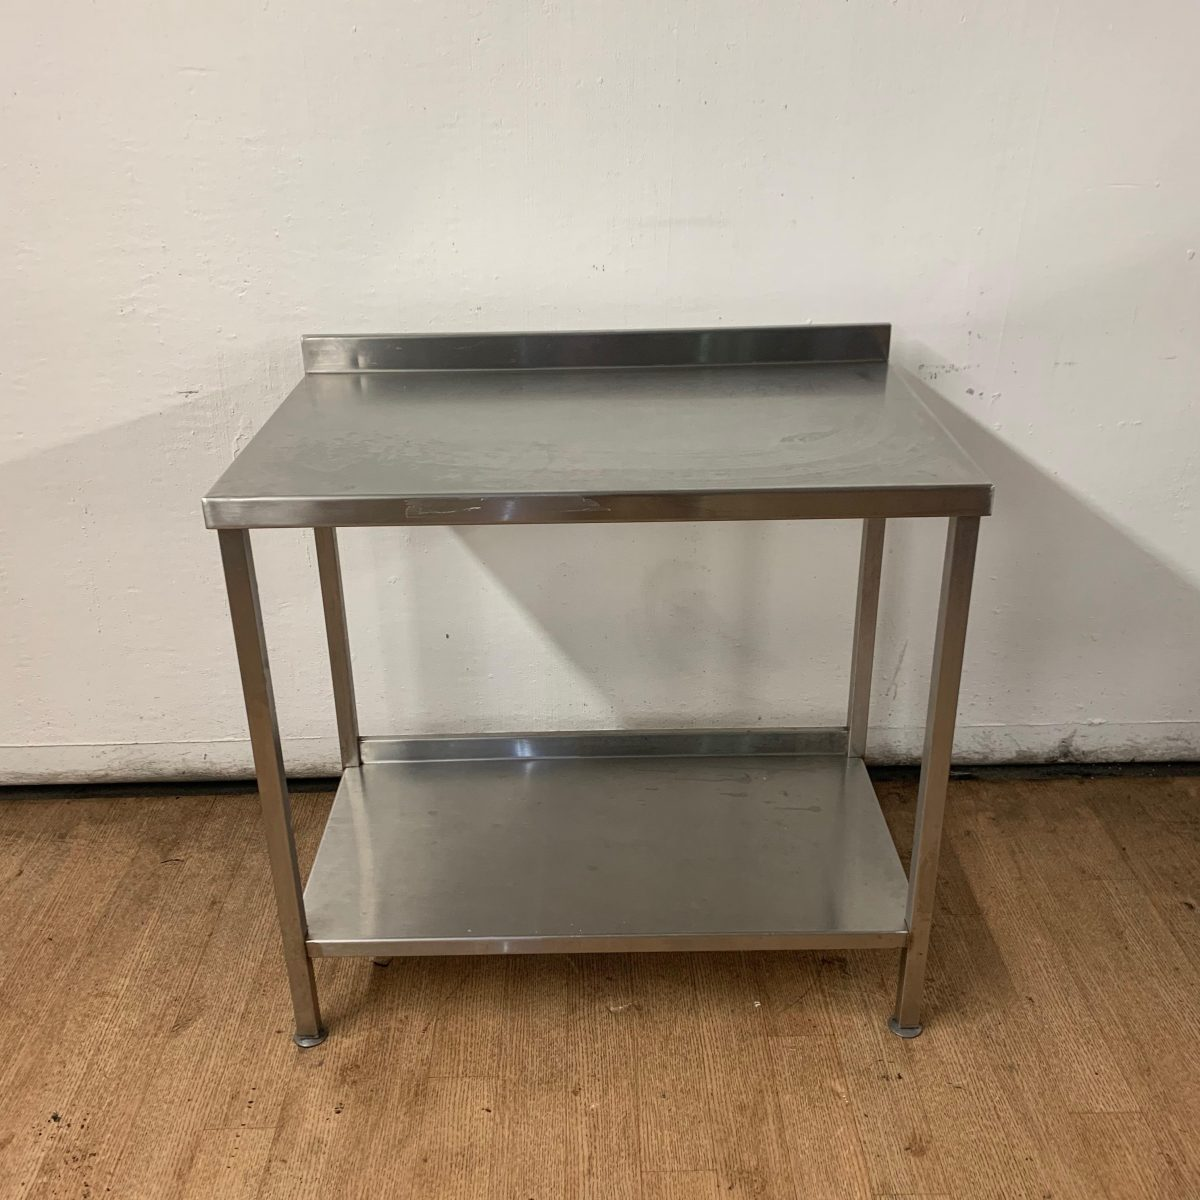 Used Stainless Steel Tables >> Used Stainless Steel Table 95cmw X 60cmd X 88cmh H2 Catering Equipment